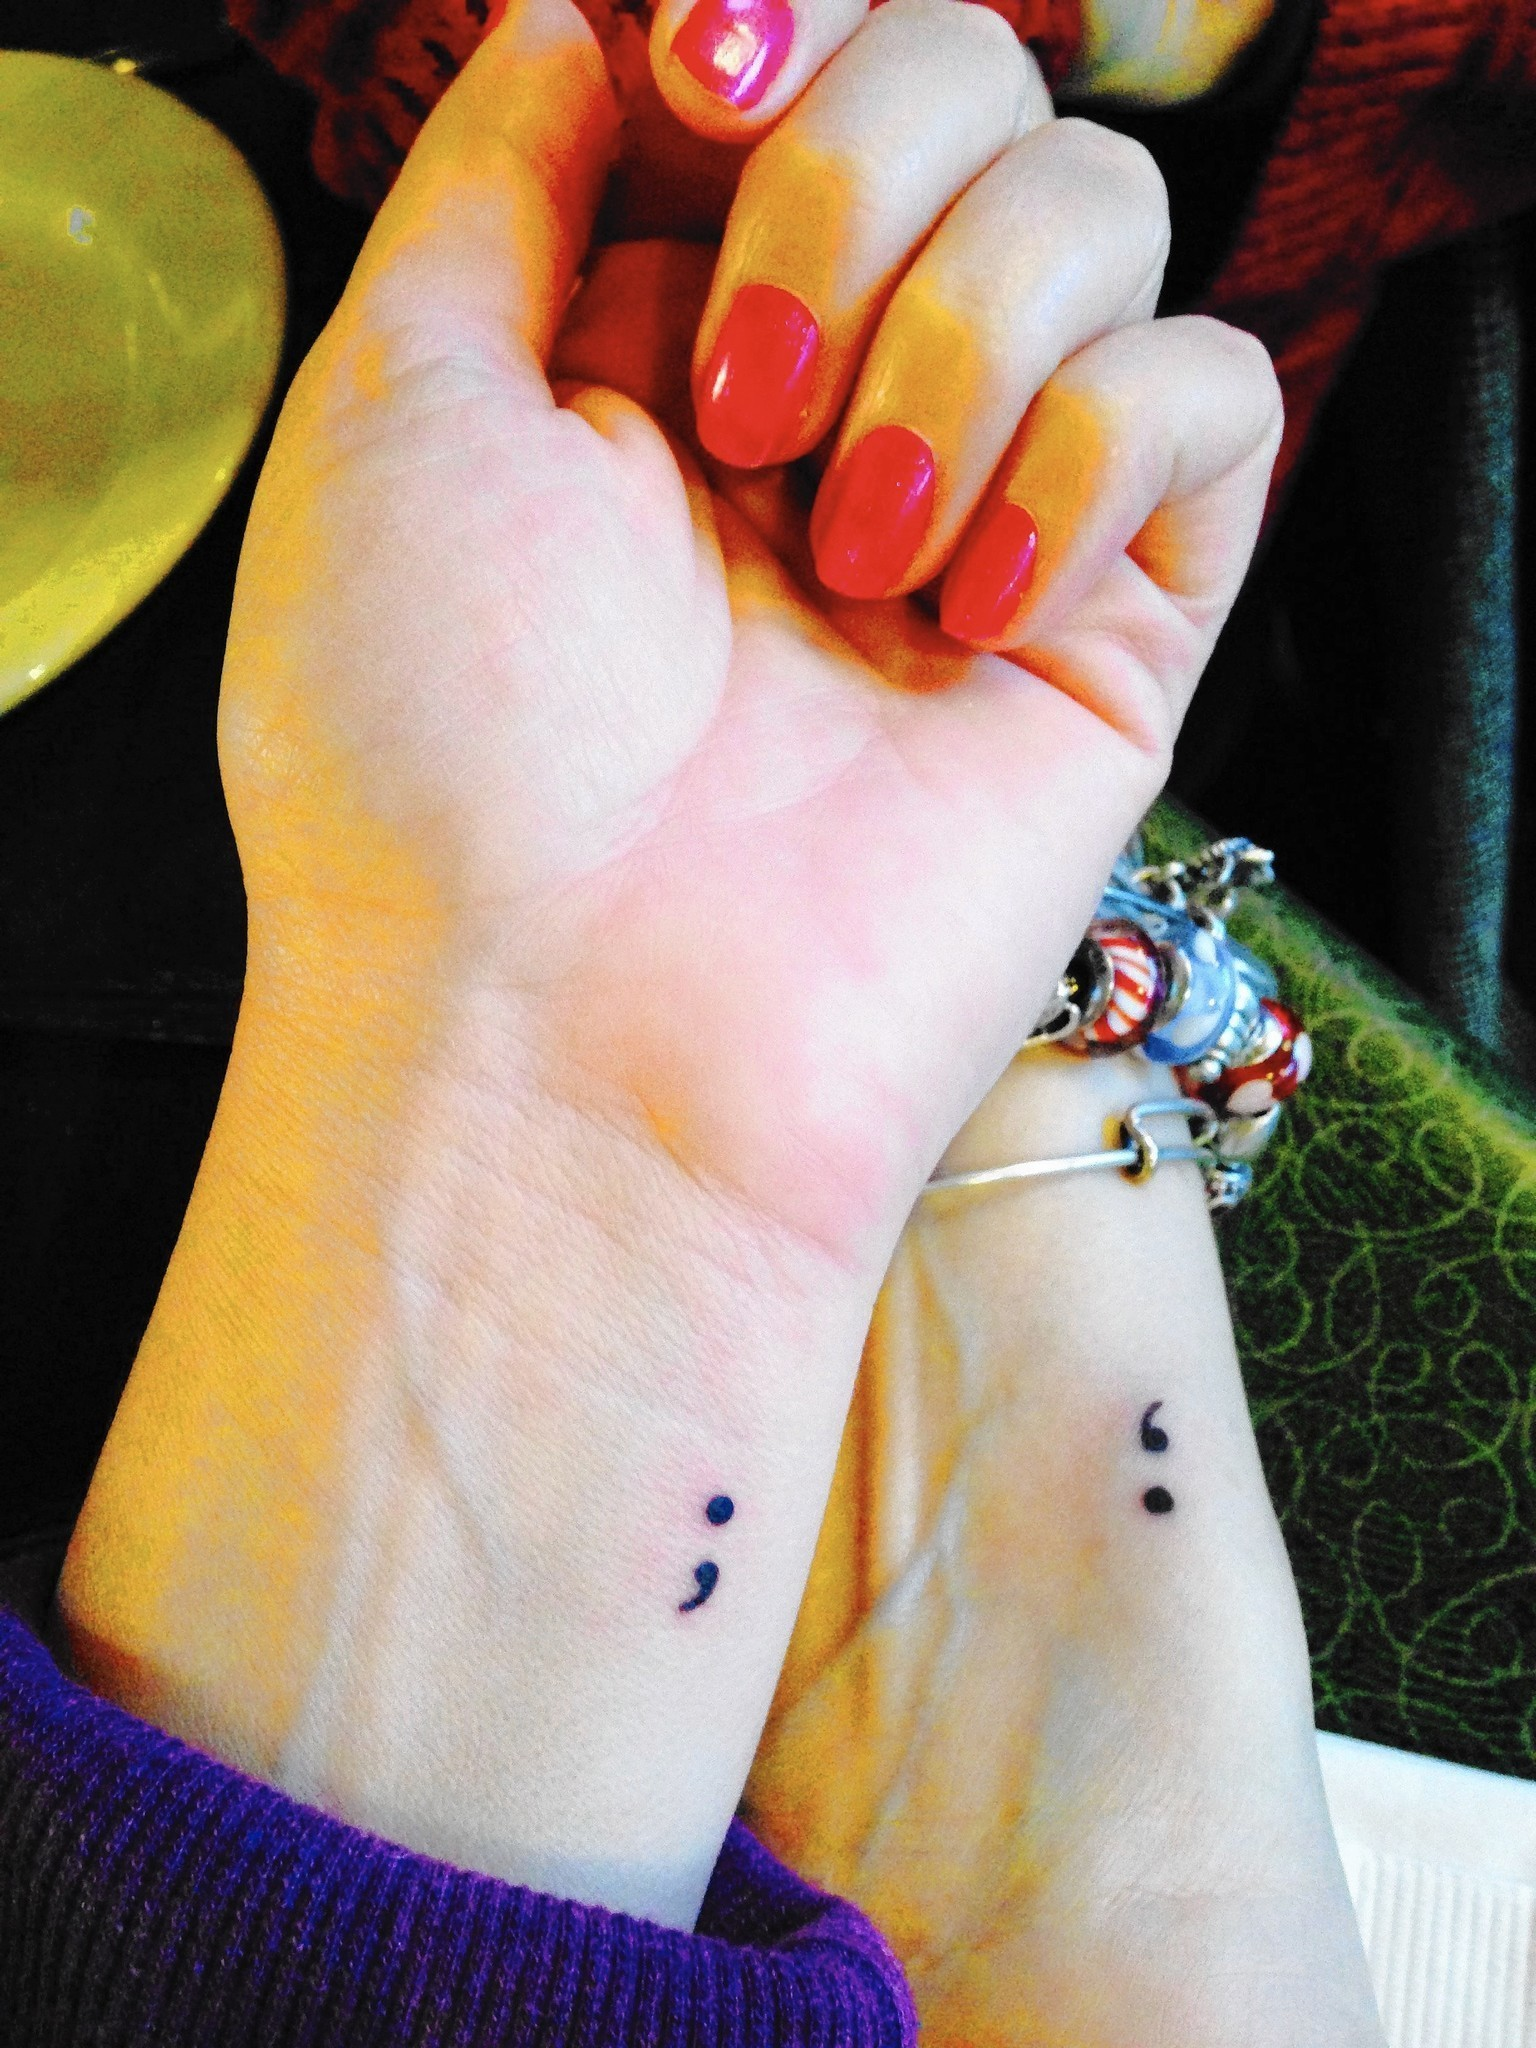 Semicolon tattoos offer a way to raise awareness of for Tattoo shops in aurora